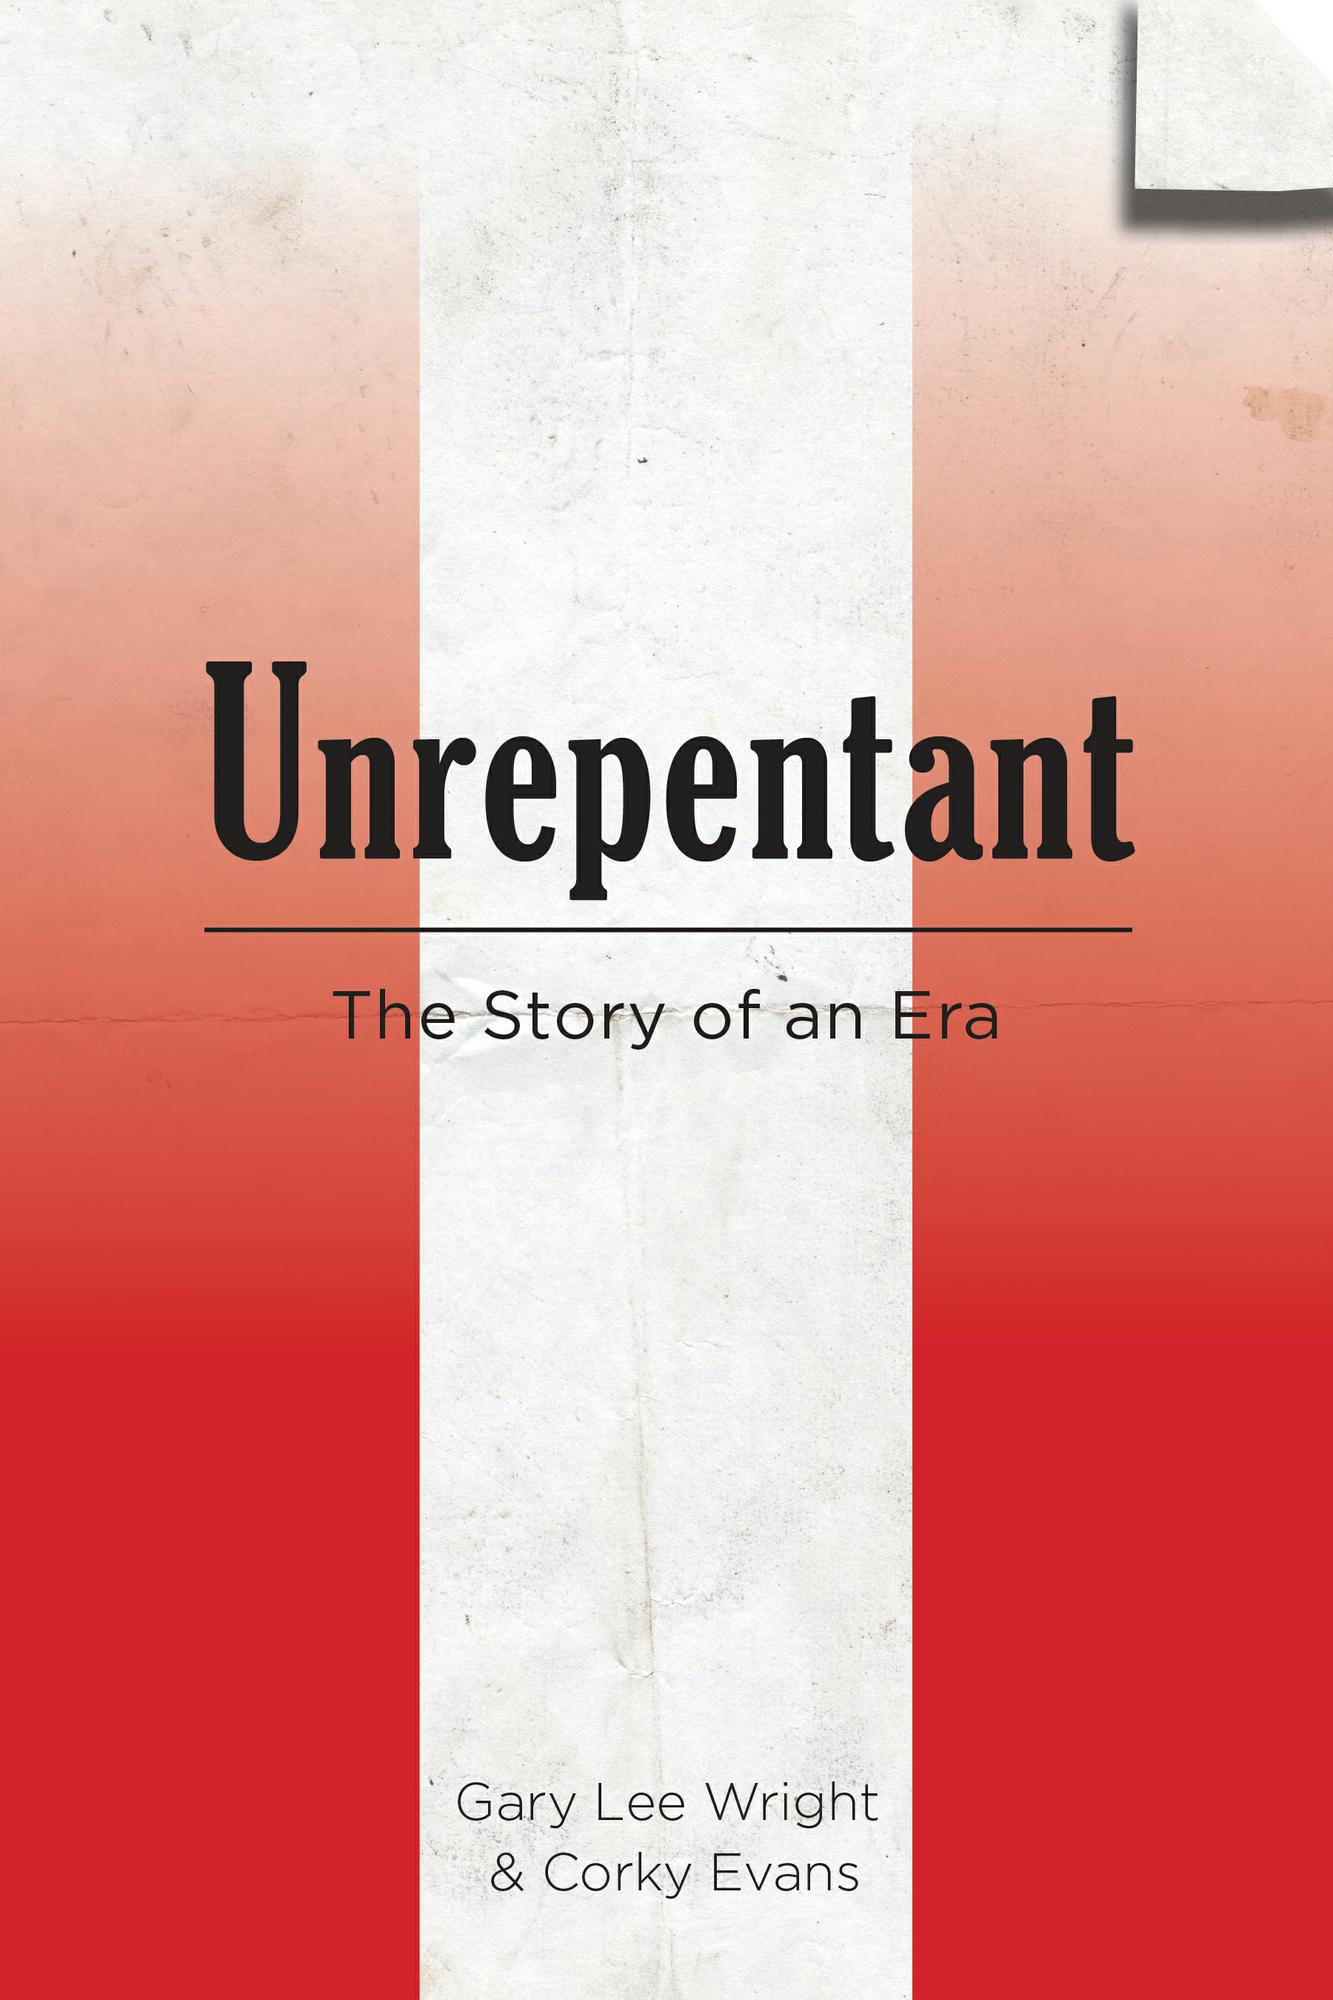 Unrepentant: The Story of an Era